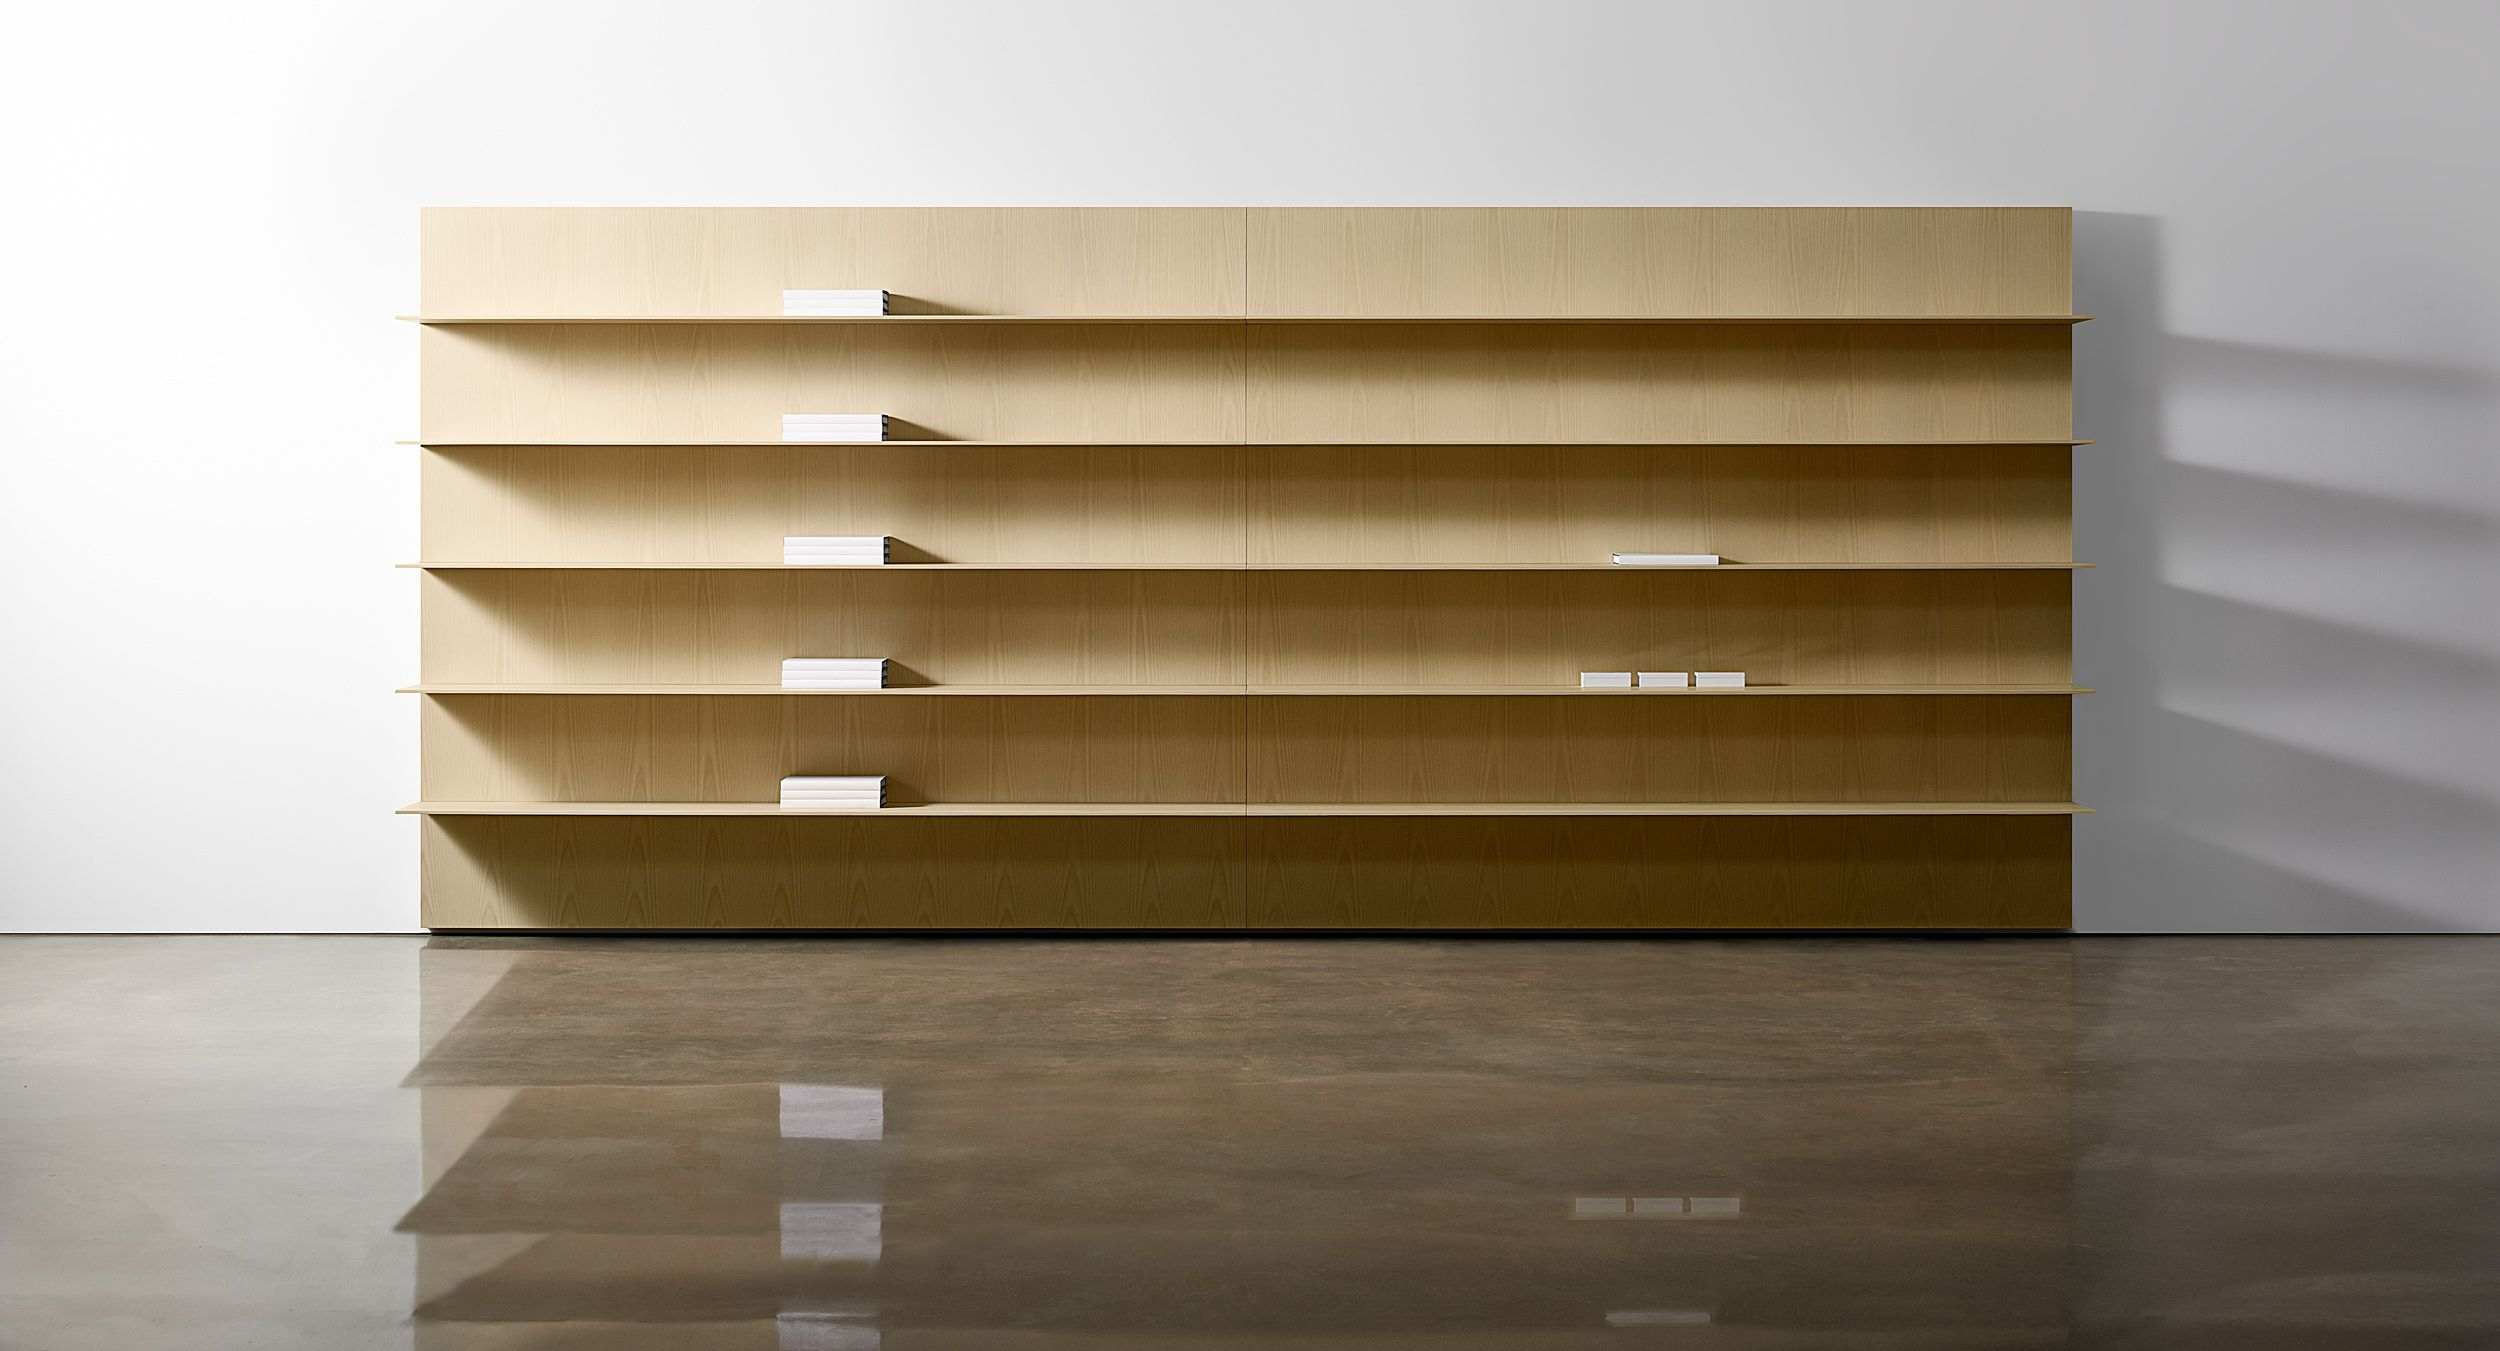 Defy gravity with patented thin wood shelving. Patent No. US9955787B2